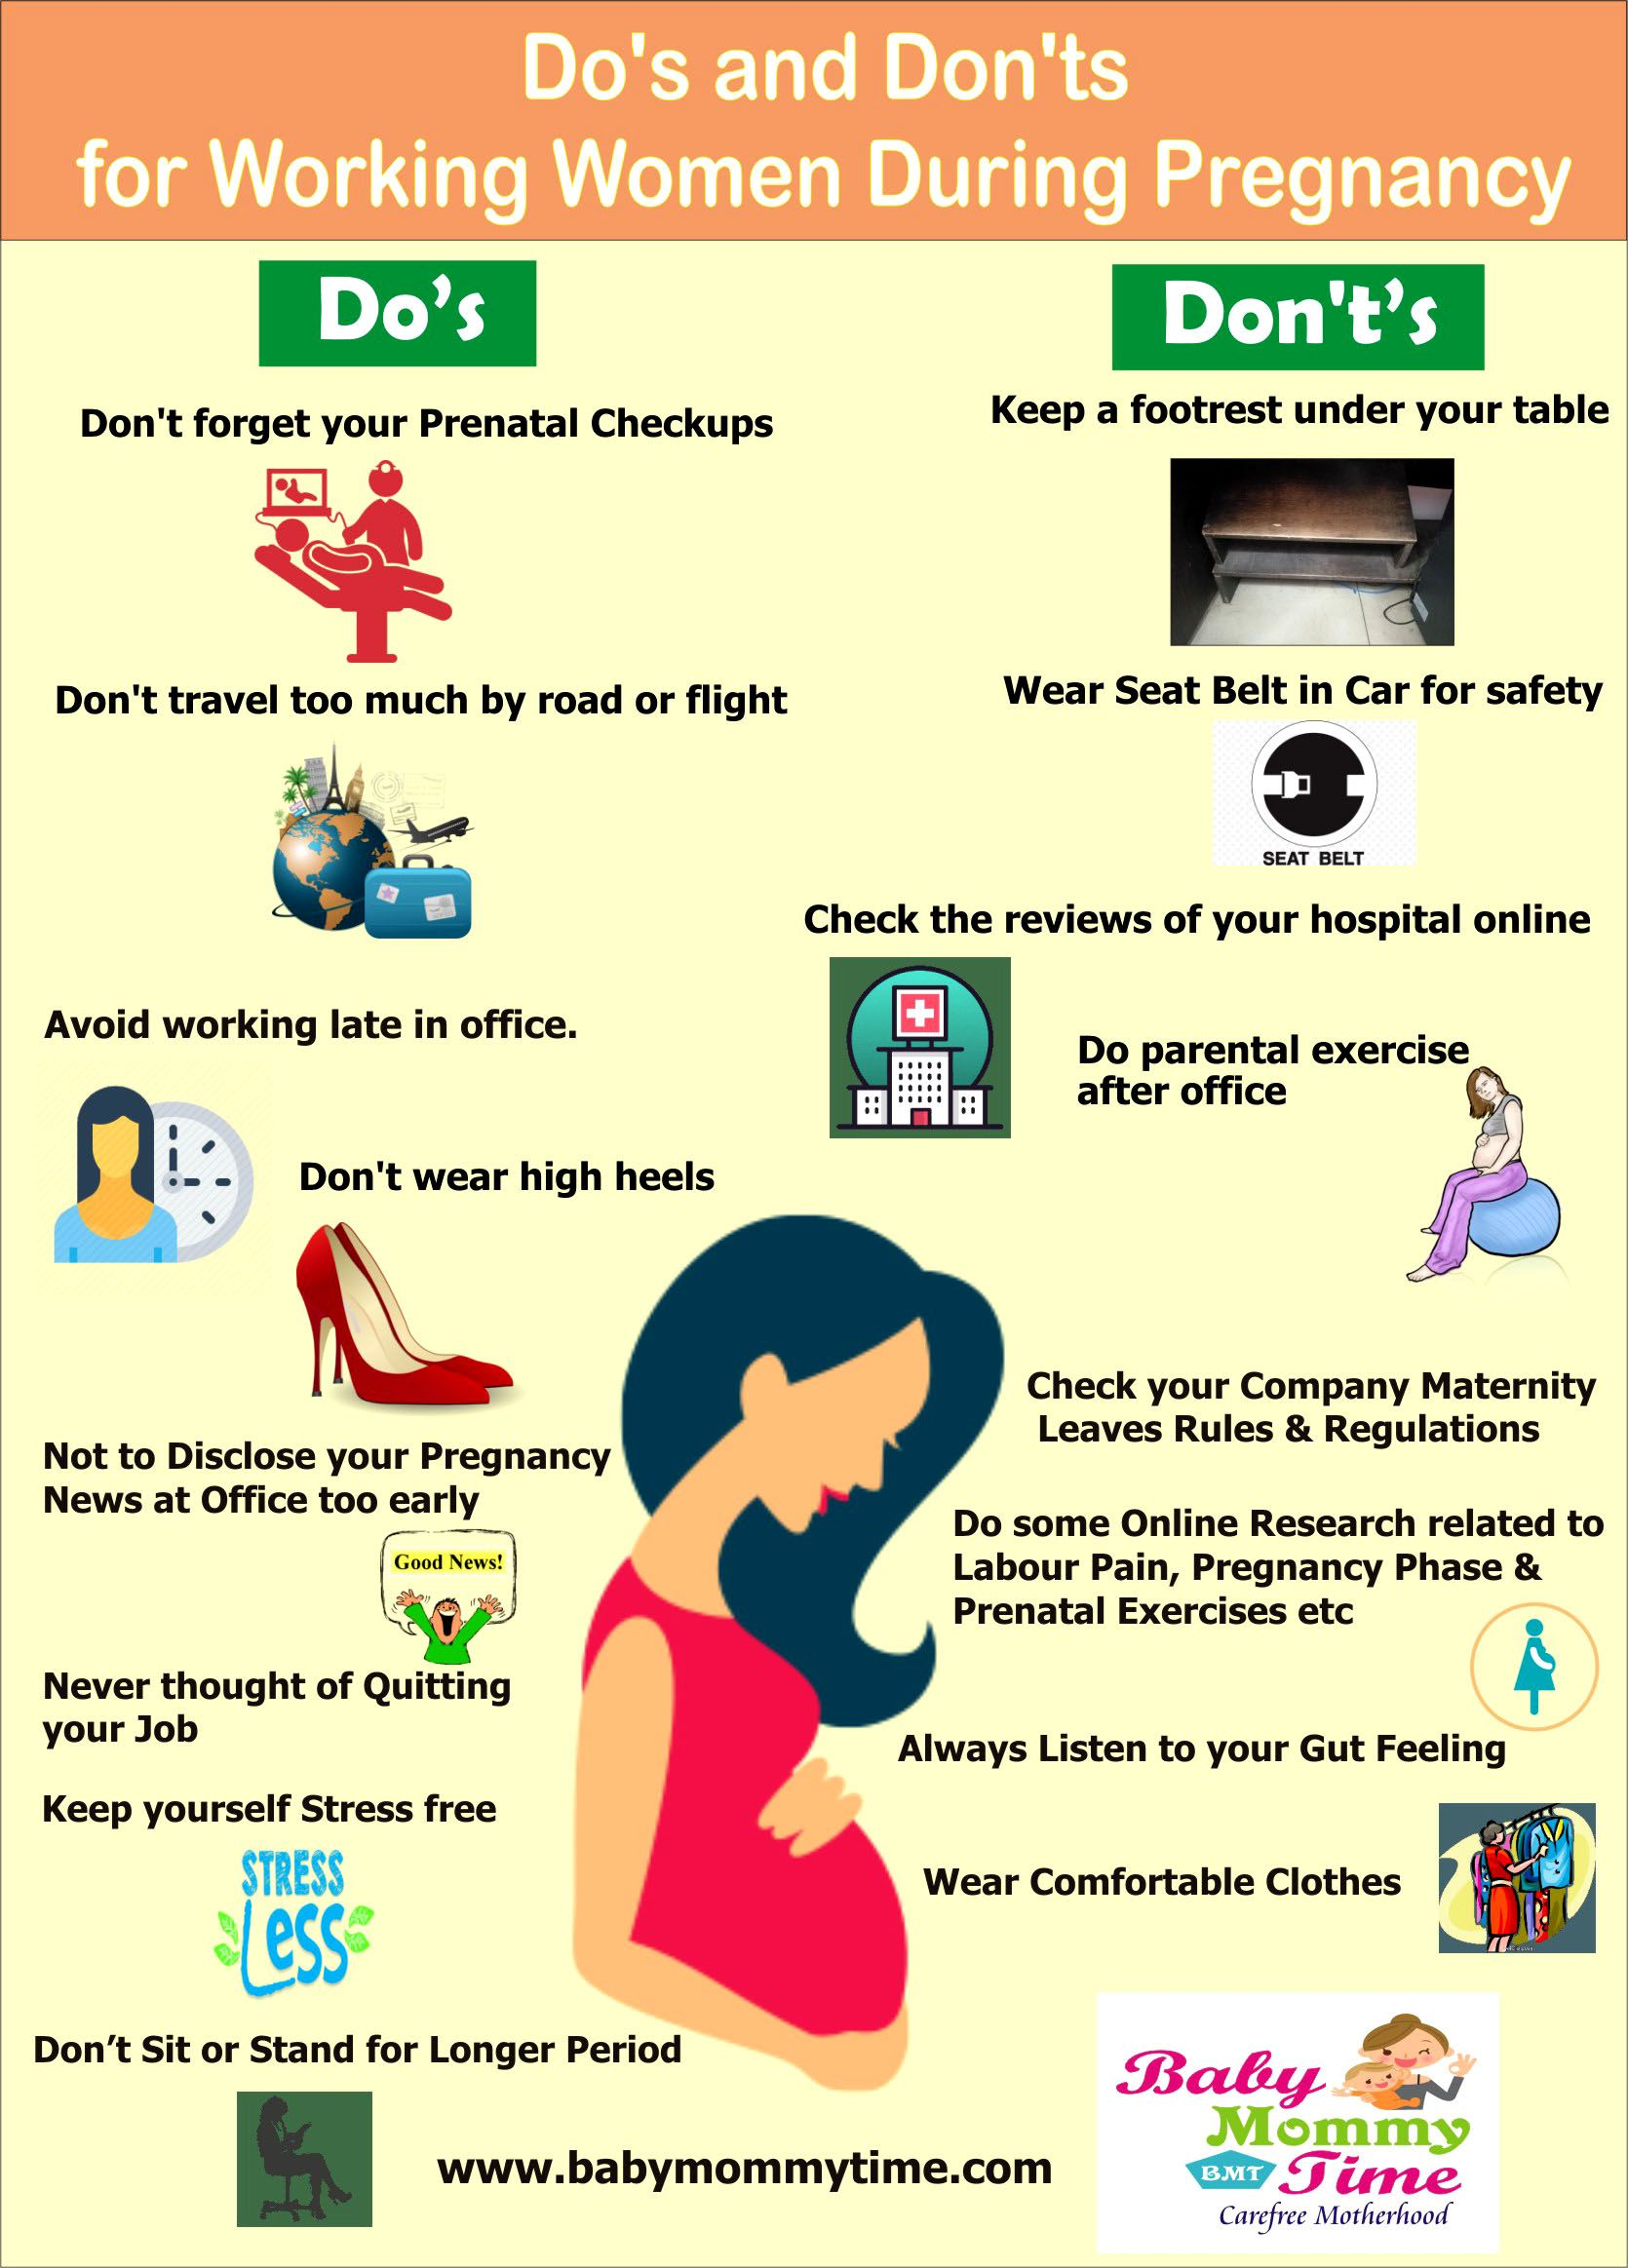 Forum on this topic: Beauty Dos and Don'ts During Pregnancy, beauty-dos-and-donts-during-pregnancy/